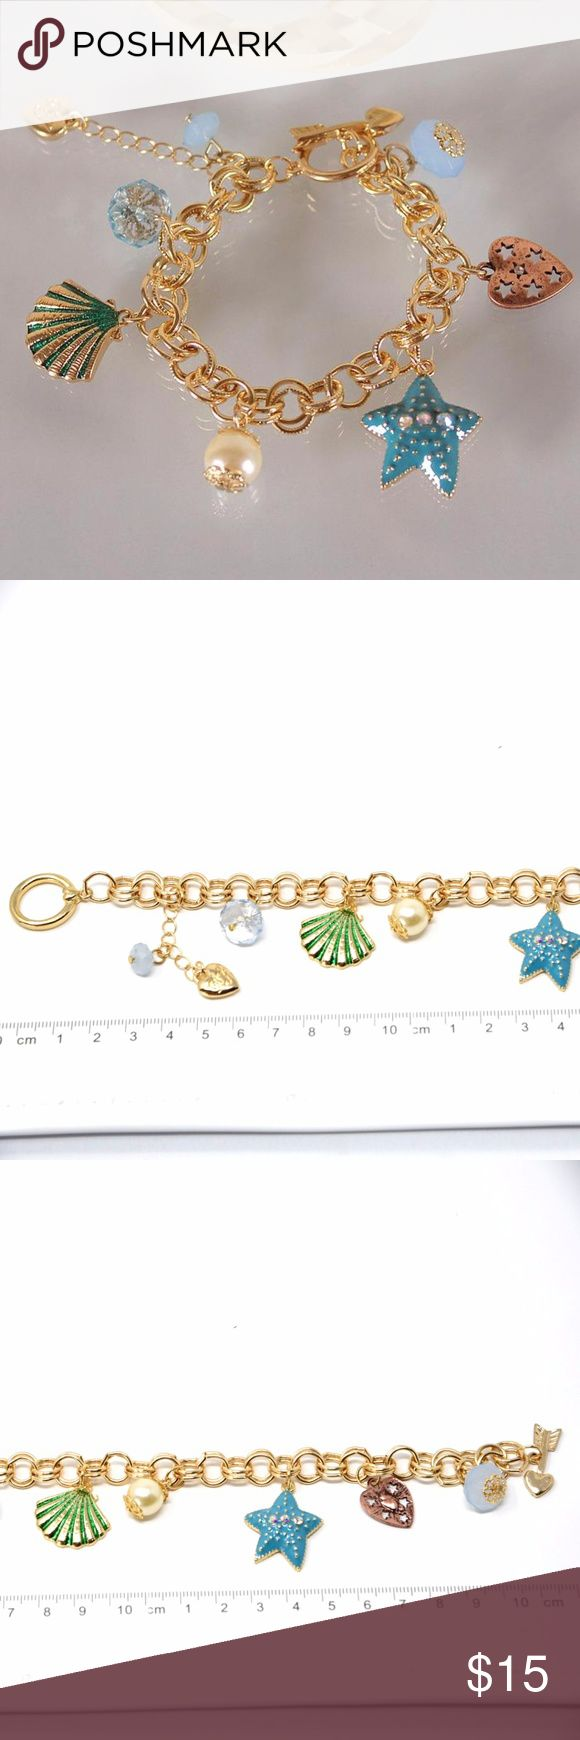 """Betsey Johnson Starfish Sea Shell Charm Bracelet This is a BRAND NEW Betsey Johnson bracelet with a starfish, a sea shell and a heart charms.  The length of the chain is 8"""".  I also have a beach ocean themed necklace for sale. Please check my other listings.  Bundle and save 15%. Betsey Johnson Jewelry Bracelets"""